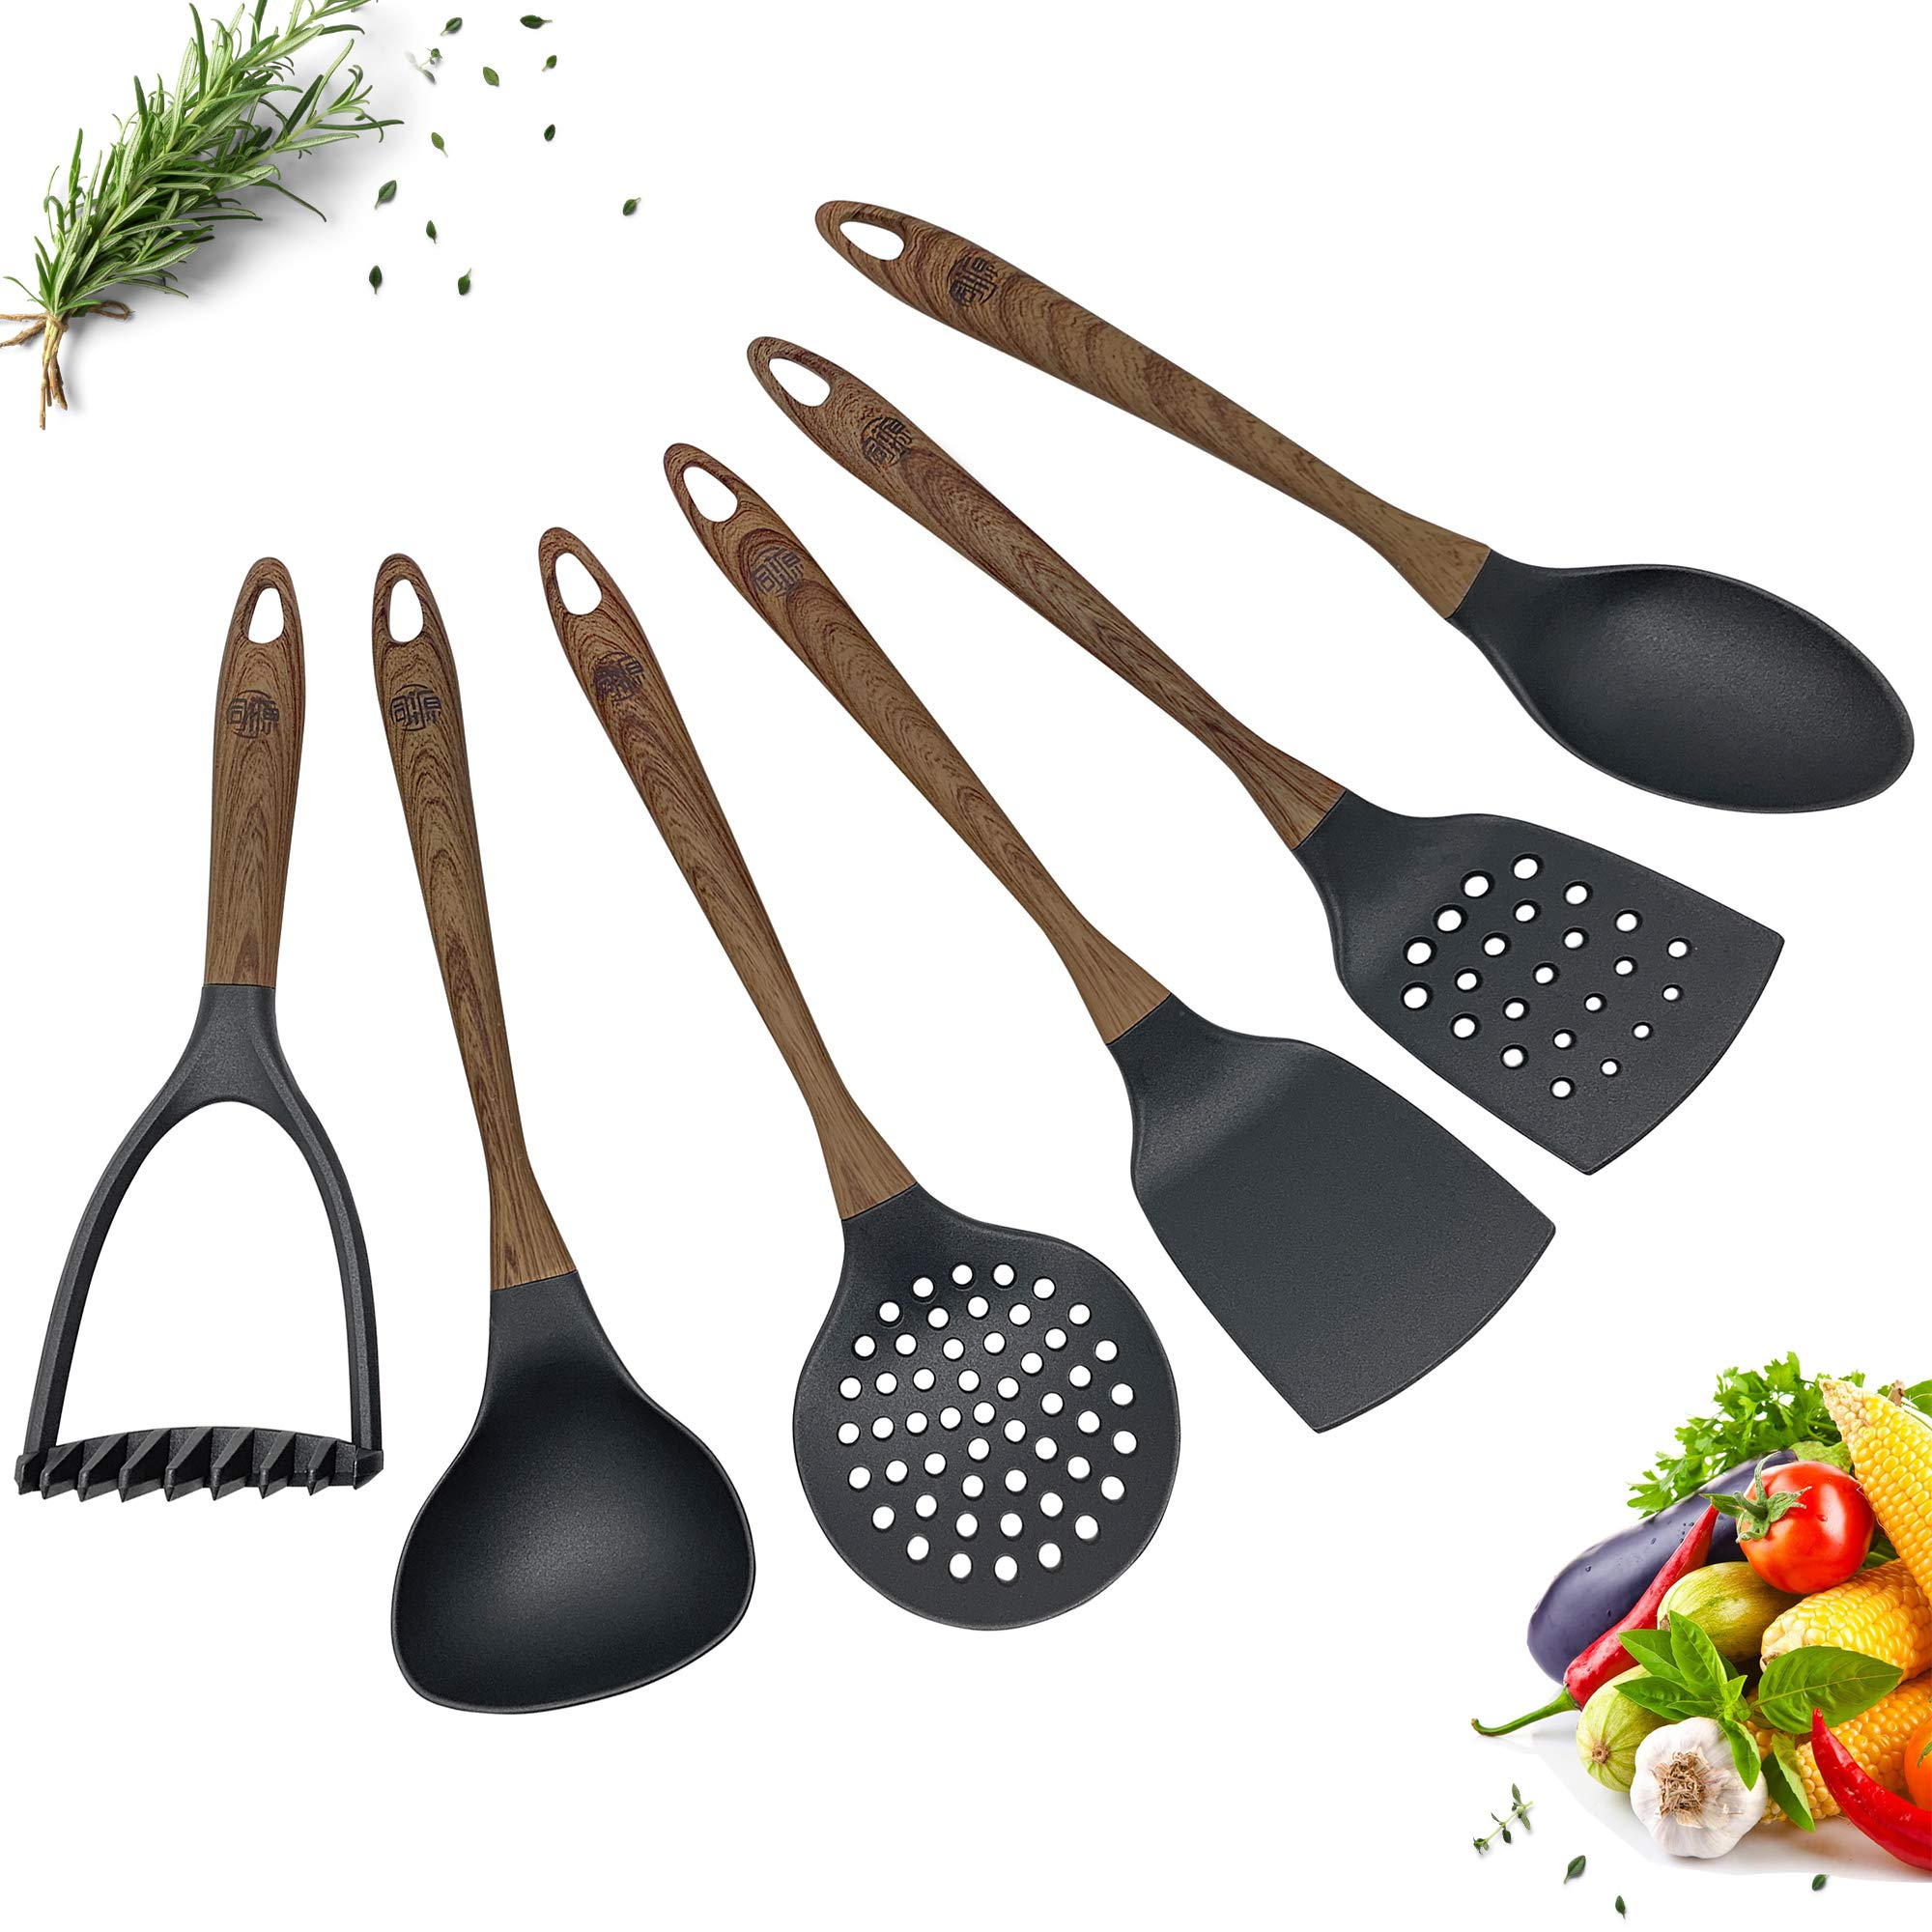 TongYuan Cooking Utensils with Soft Woodlike Handle-Stylish And Comfortable Grip Design- Kitchen Gadgets Utensil Set for nonstick cookware